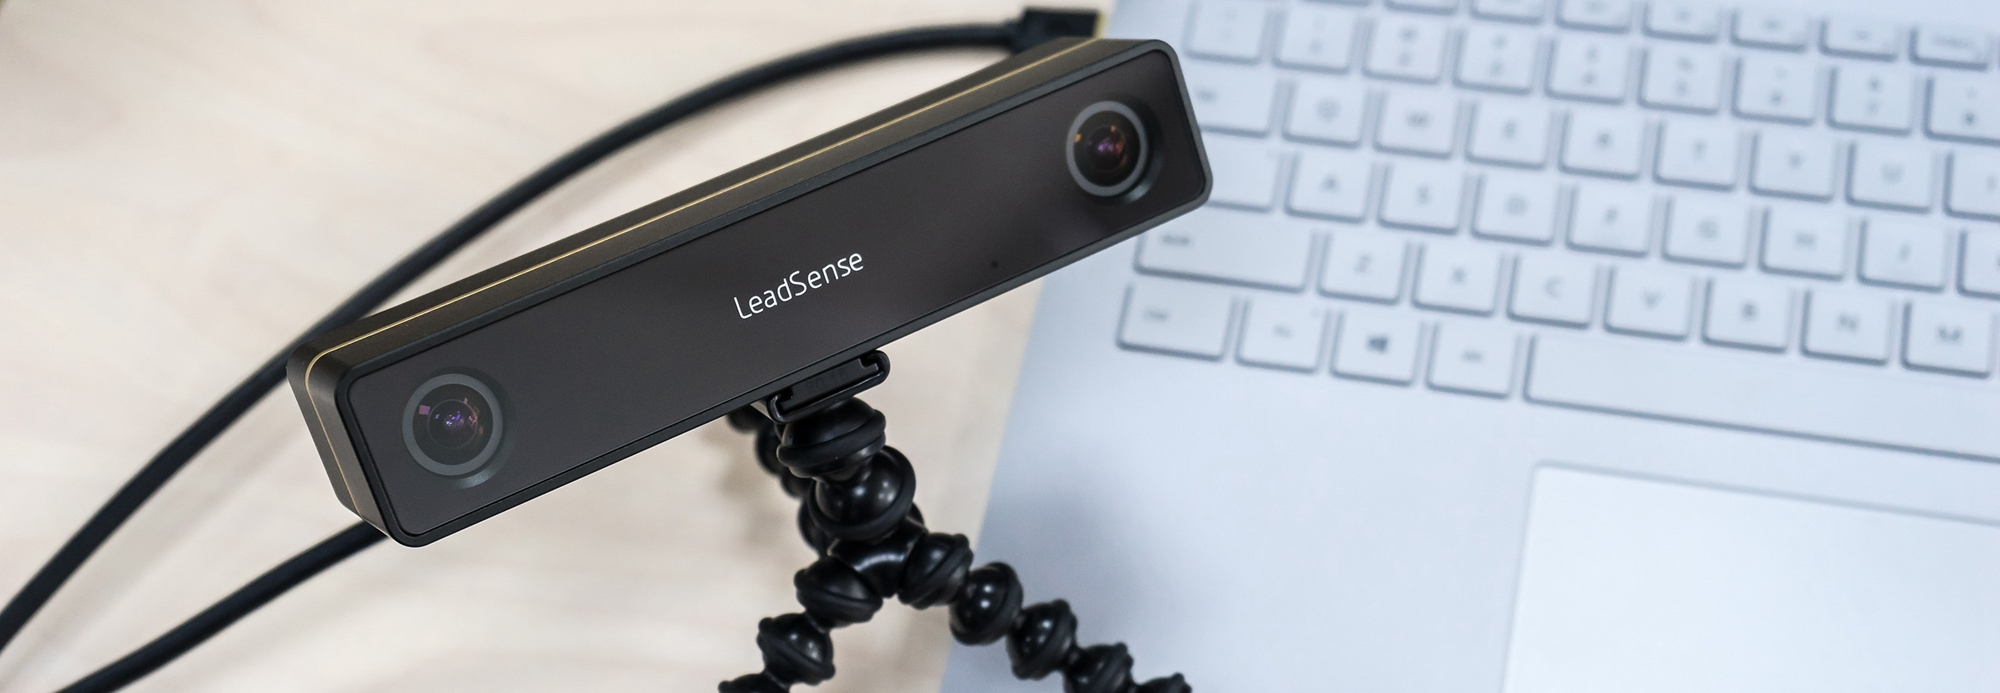 LeadSense Stereo Camera